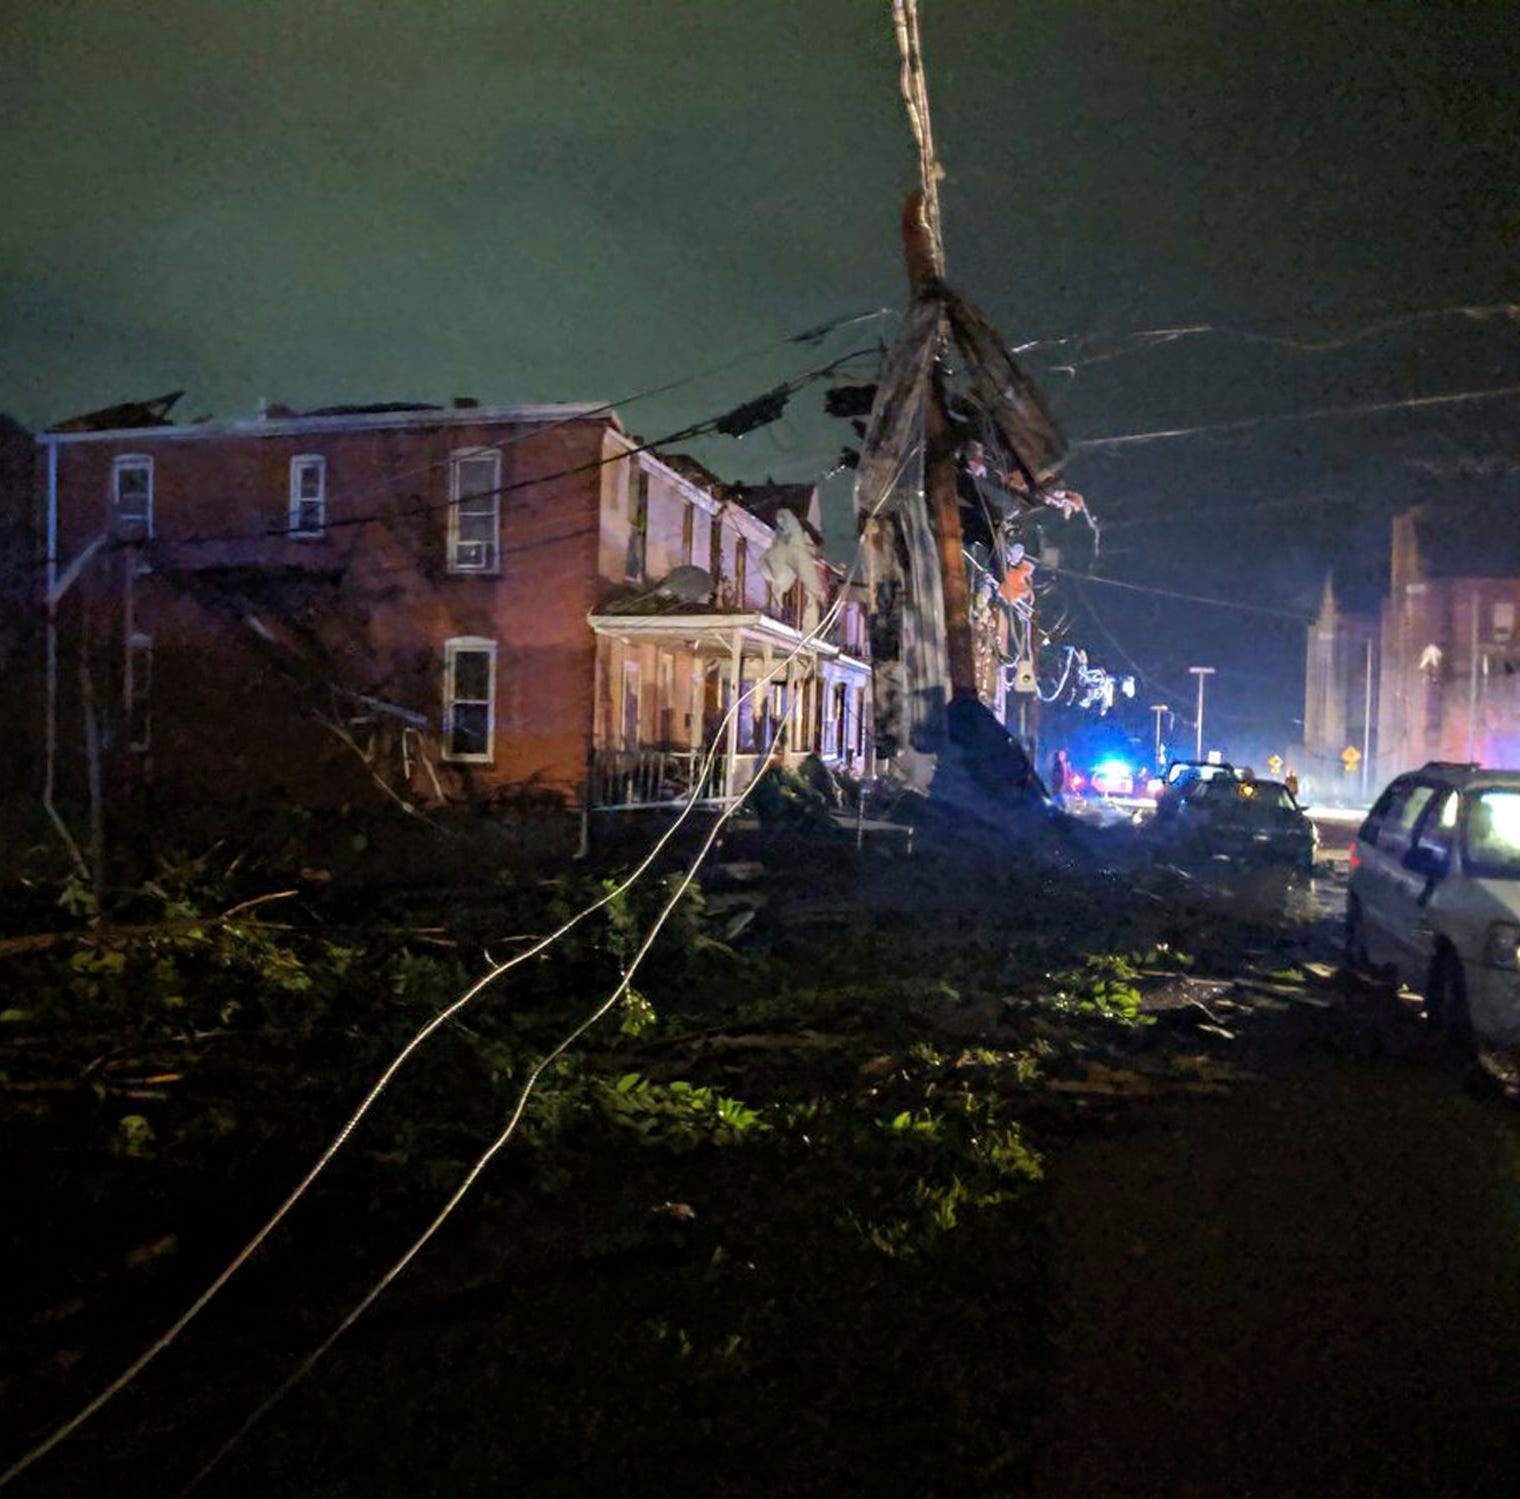 Extensive damage seen in Jefferson City following late-night tornado